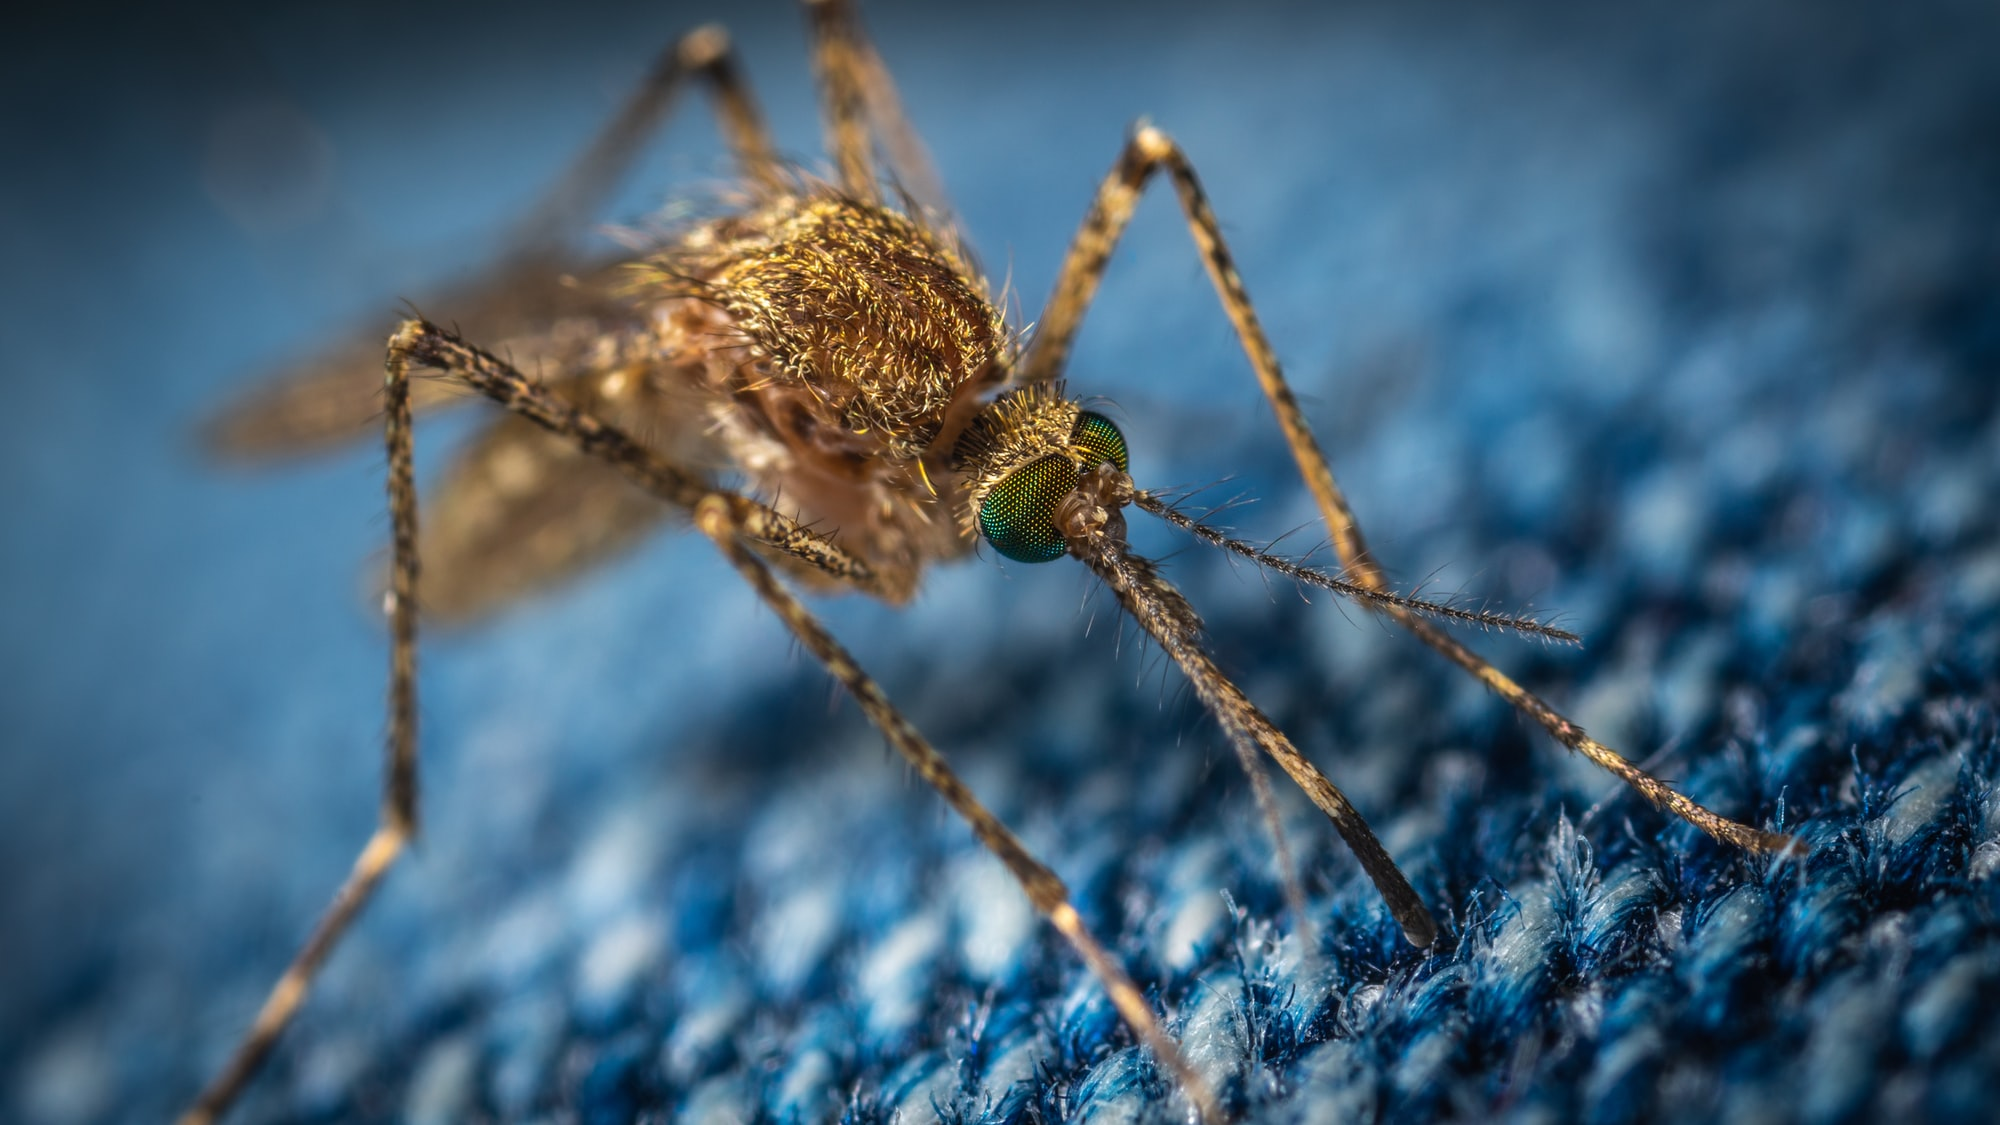 Health Department Will Spray Parts Of Brooklyn To Reduce Risk of West Nile Virus